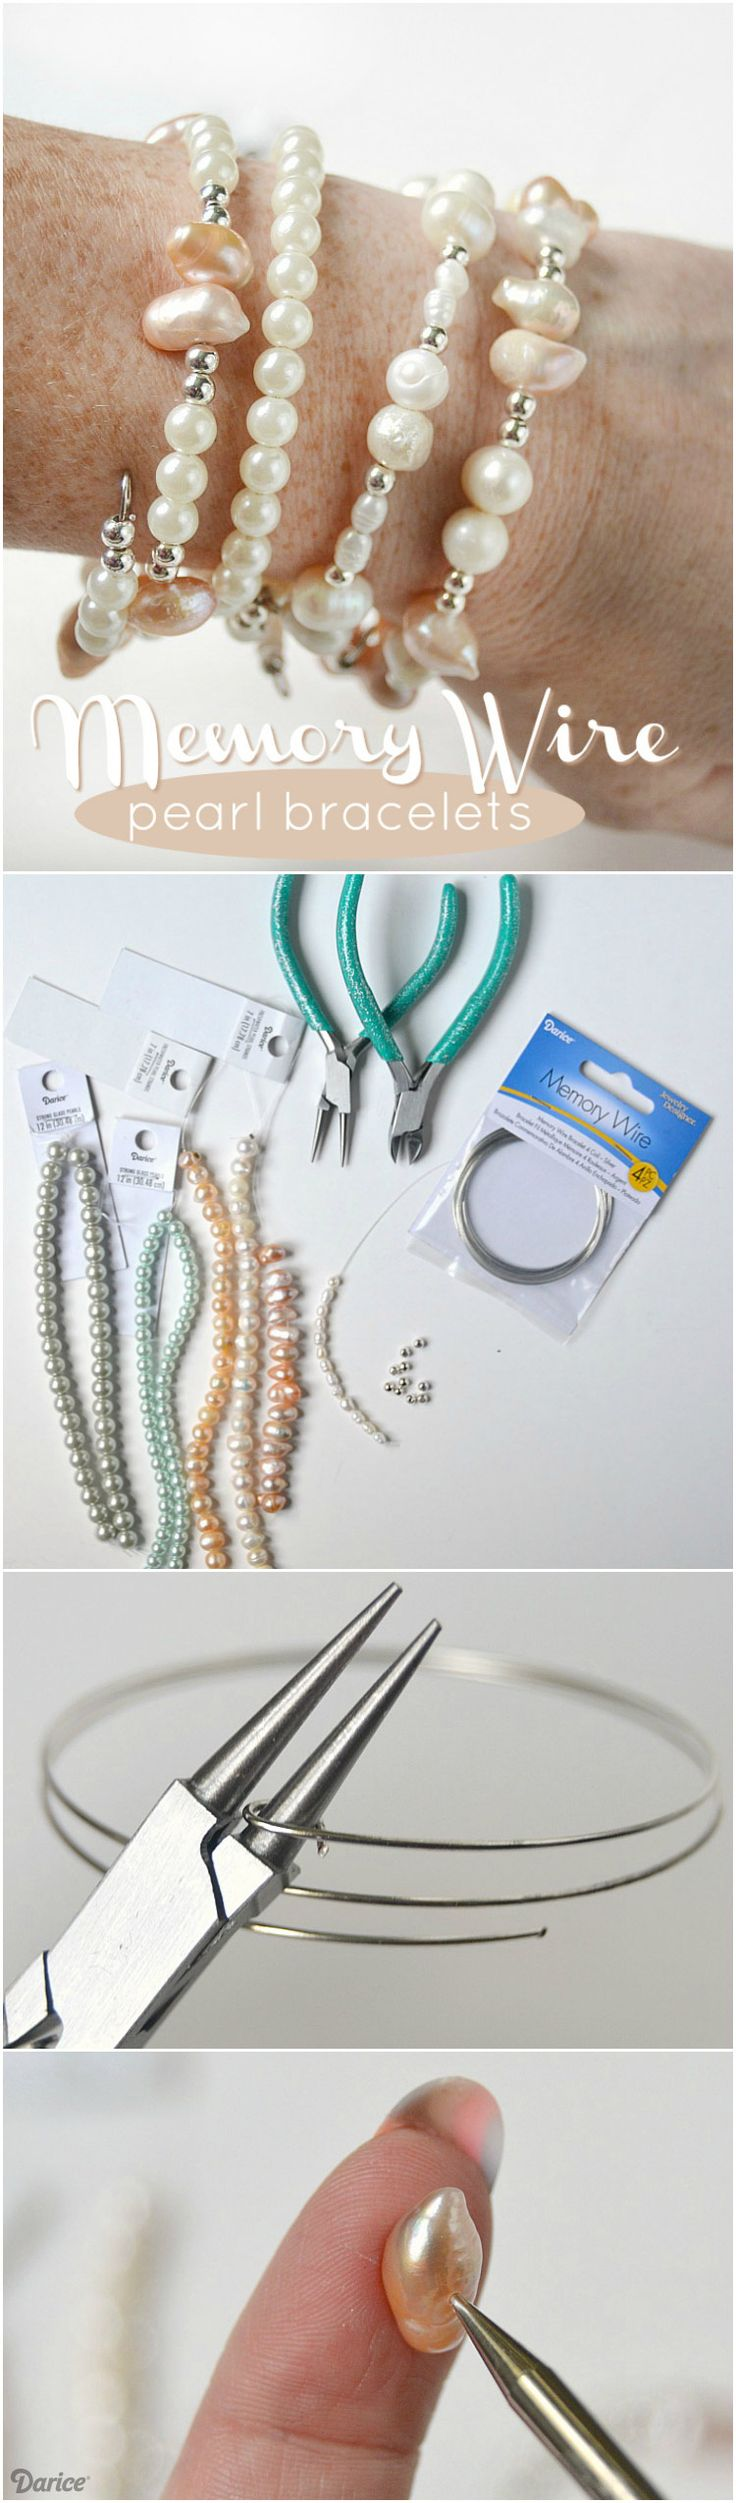 Glass pearl beads and freshwater pearls combine in this easy memory wire bracelet tutorial. What a great beginner jewelry making project!